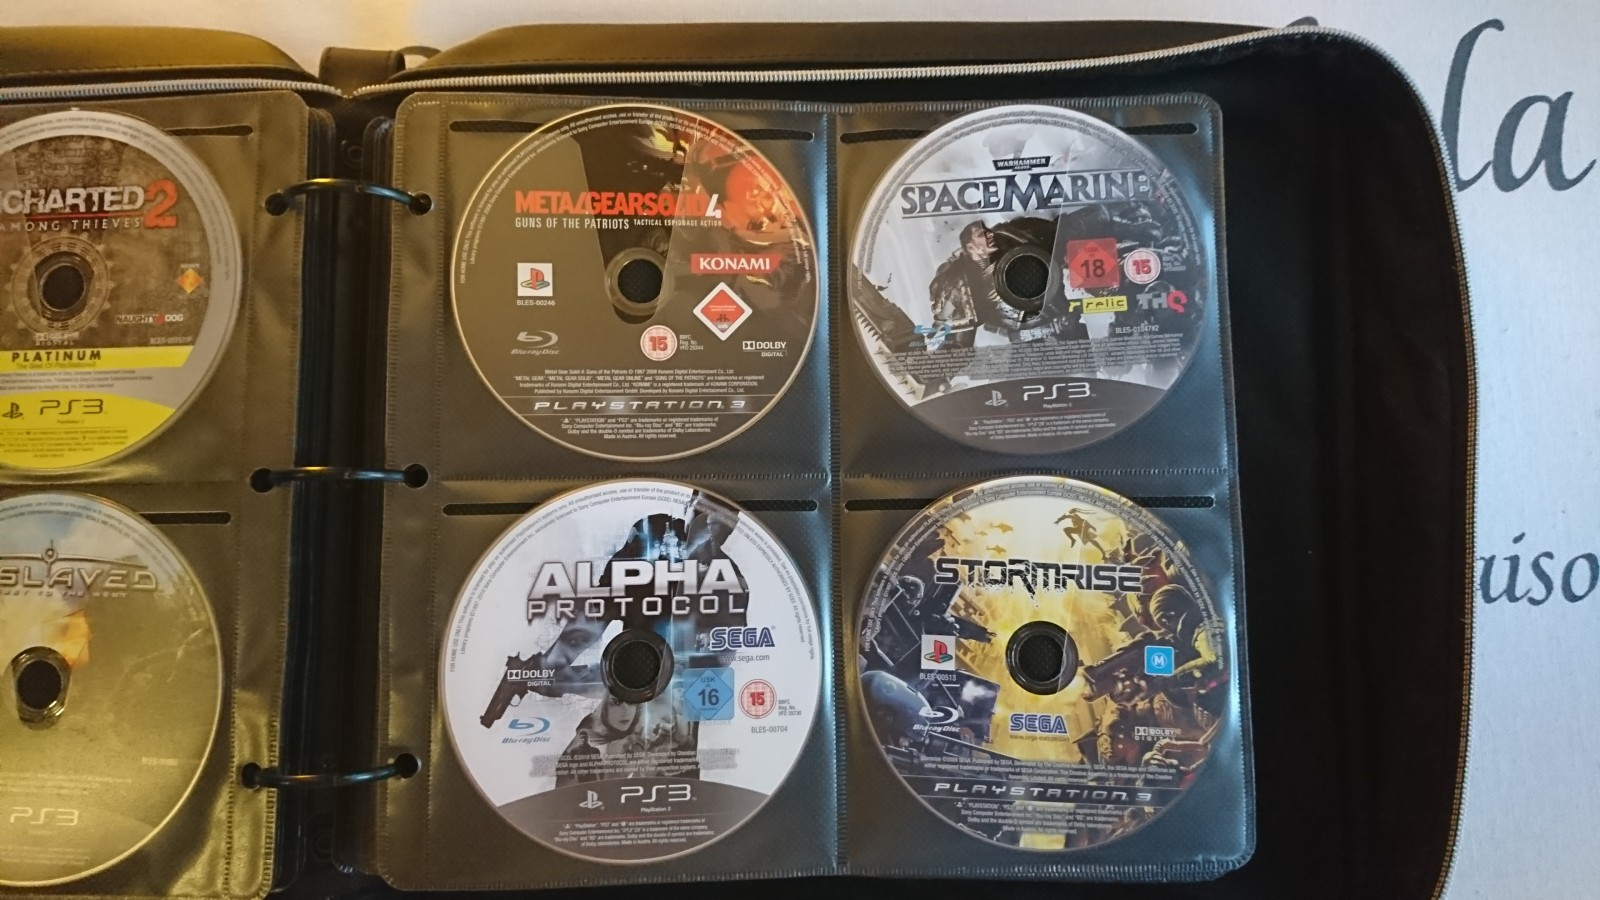 DSC 0236 - PS3 Games Collection - Gallery - AtariAge Forums